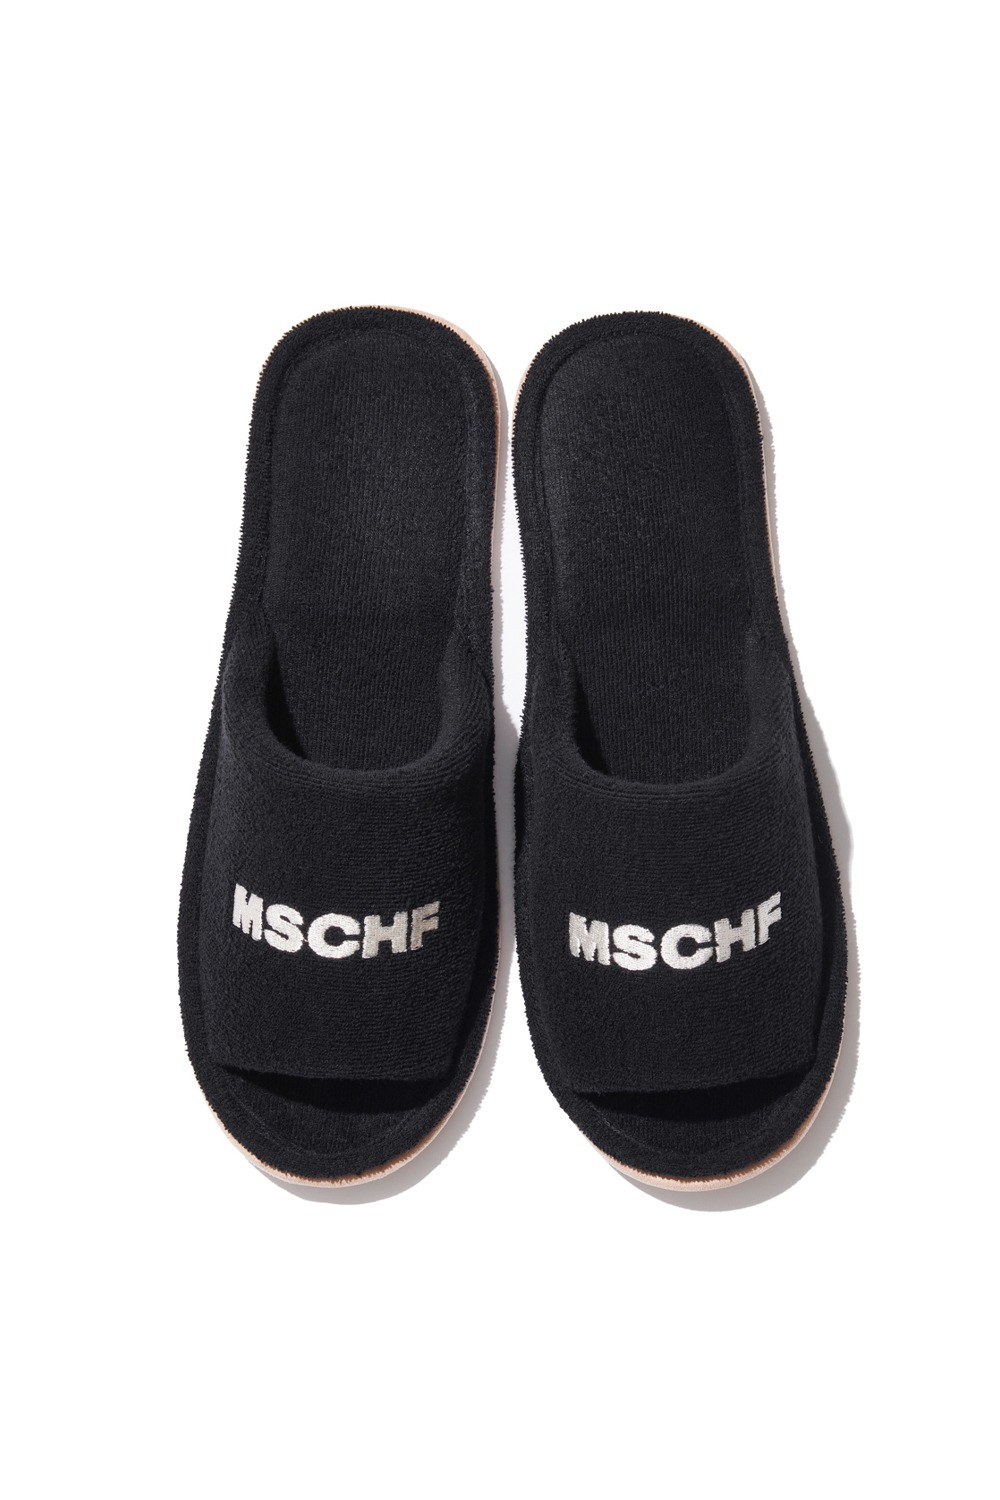 COLLECTIVE OG TOWEL SLIPPERS_black